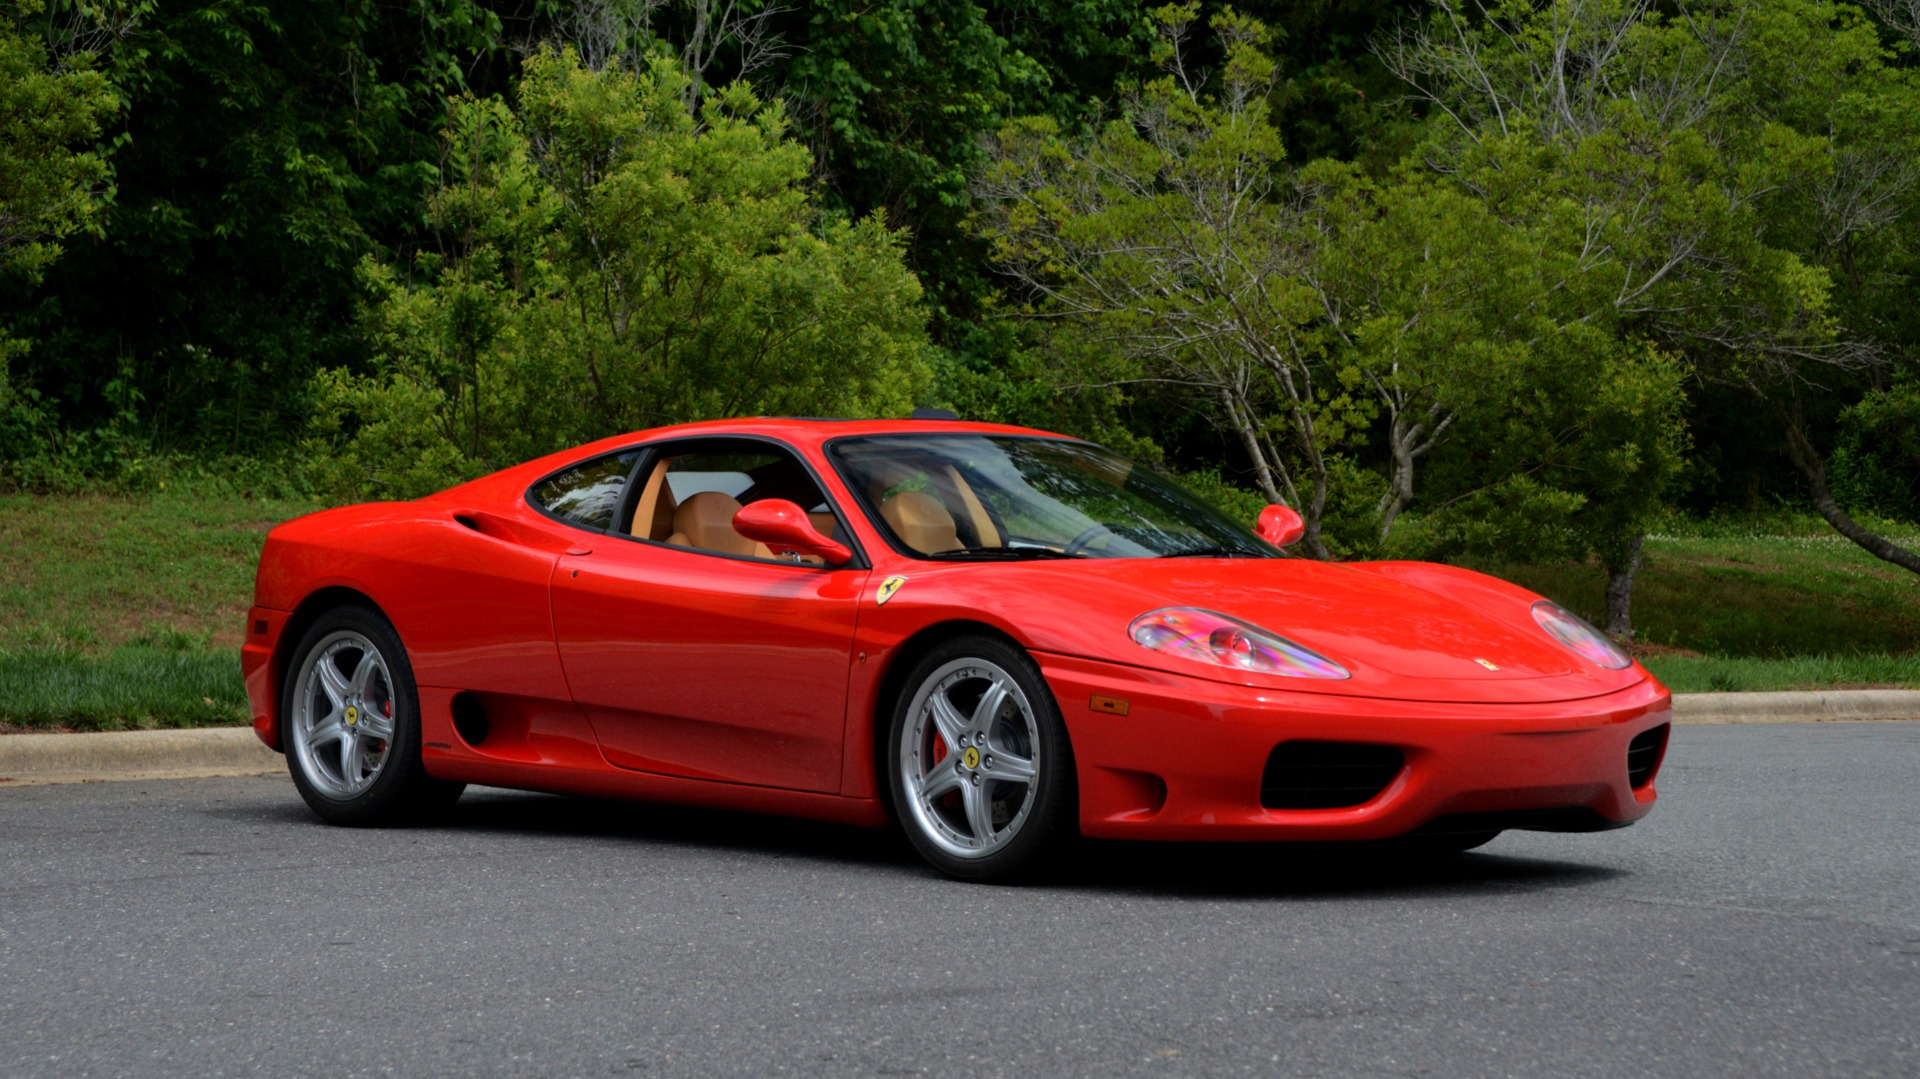 Used 2004 Ferrari 360 MODENA COUPE / GATED 6-SPD MANUAL / SUNROOF / LOW MILES for sale Sold at Formula Imports in Charlotte NC 28227 7